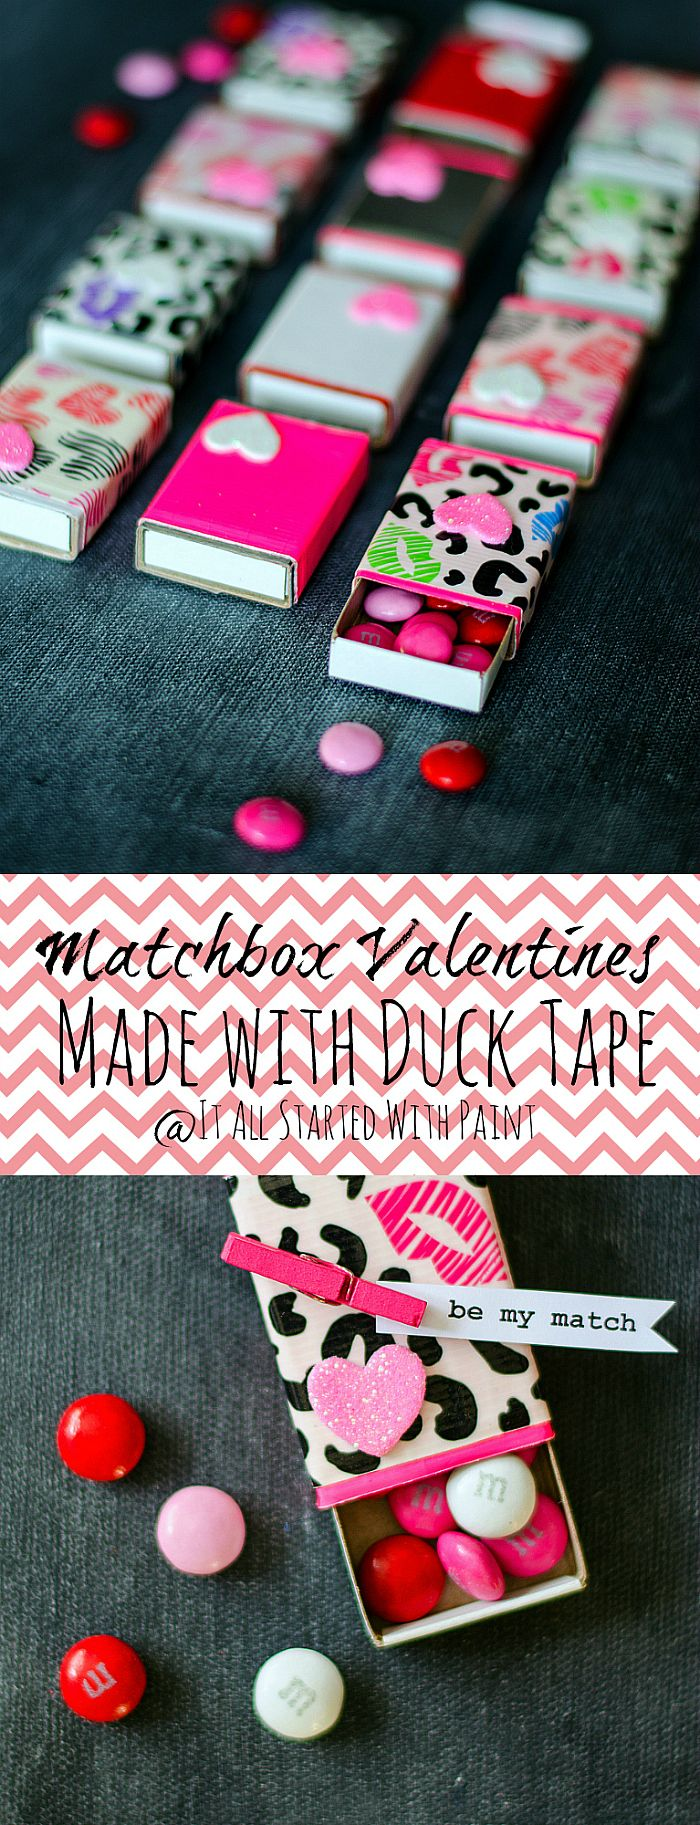 Valentines Ideas: Matchbox Valentine made with Duck Tape #DuckValentine